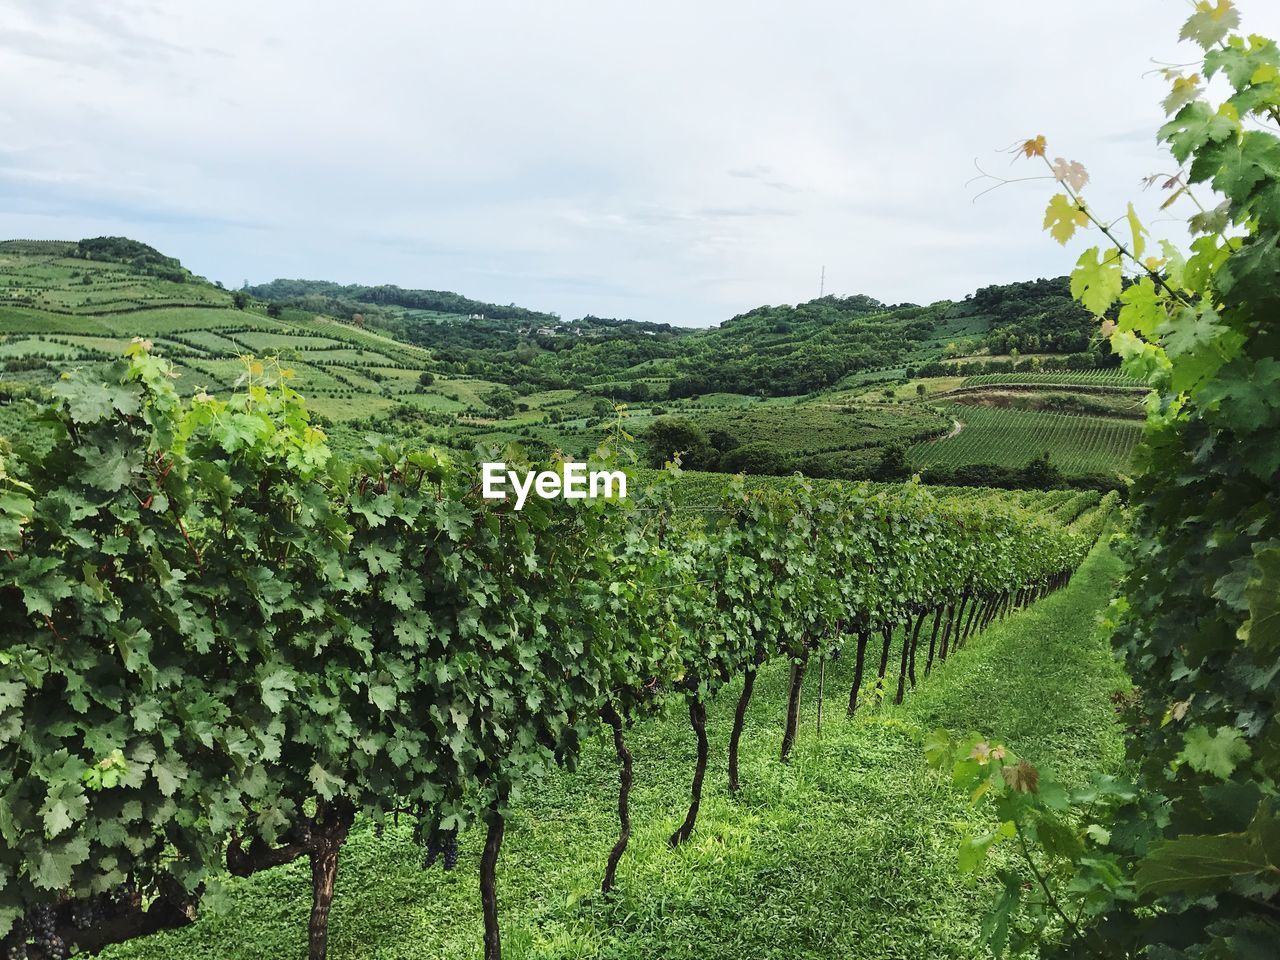 plant, growth, green color, vineyard, agriculture, field, landscape, beauty in nature, nature, land, tranquil scene, rural scene, scenics - nature, tranquility, sky, environment, winemaking, crop, no people, vine, farm, outdoors, plantation